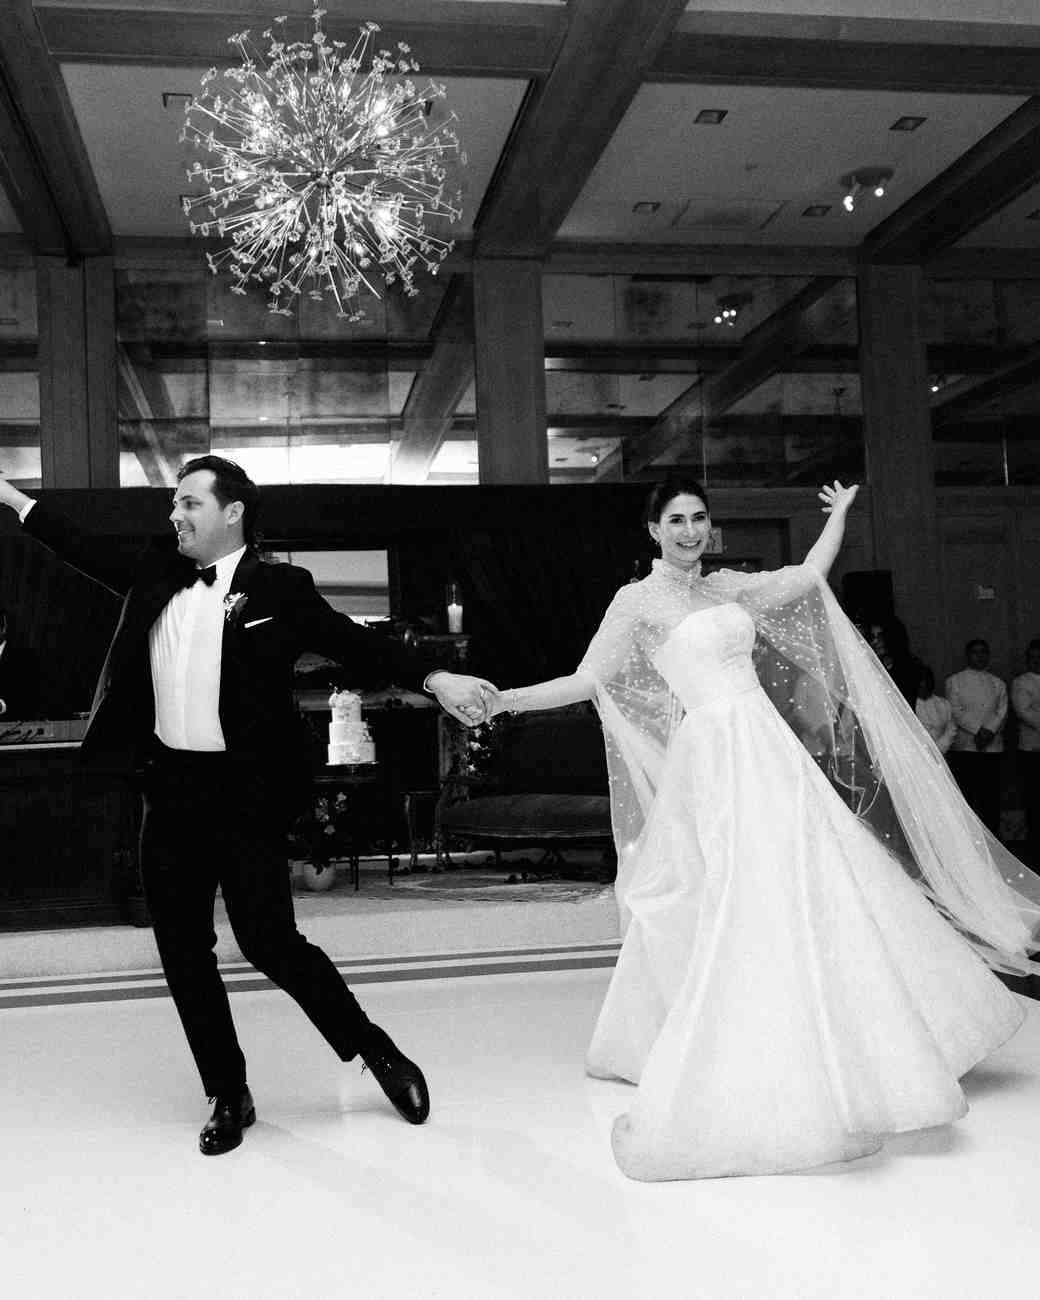 mia patrick wedding couple first dance in black and white